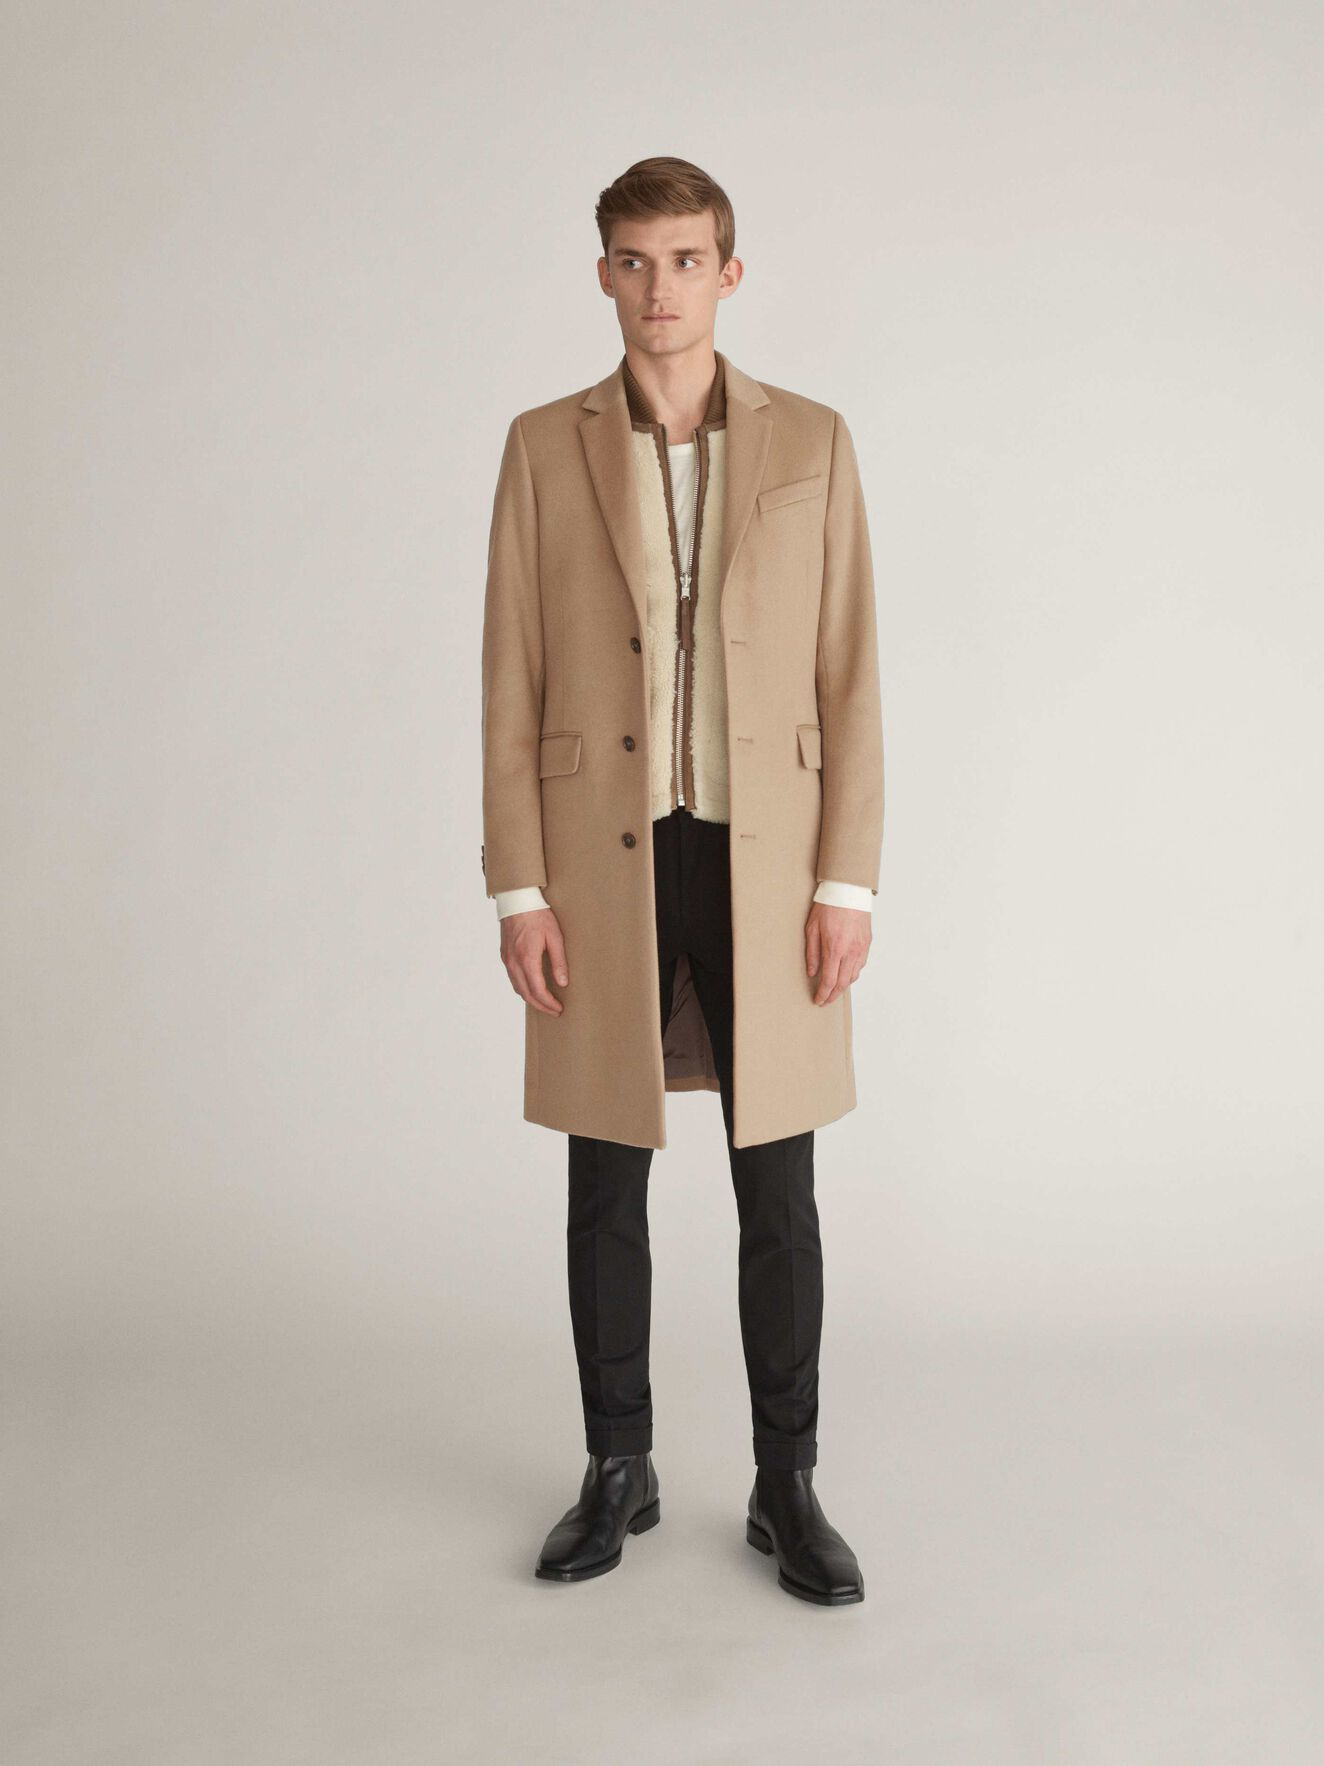 Coltmar Coat in Dark Honey from Tiger of Sweden